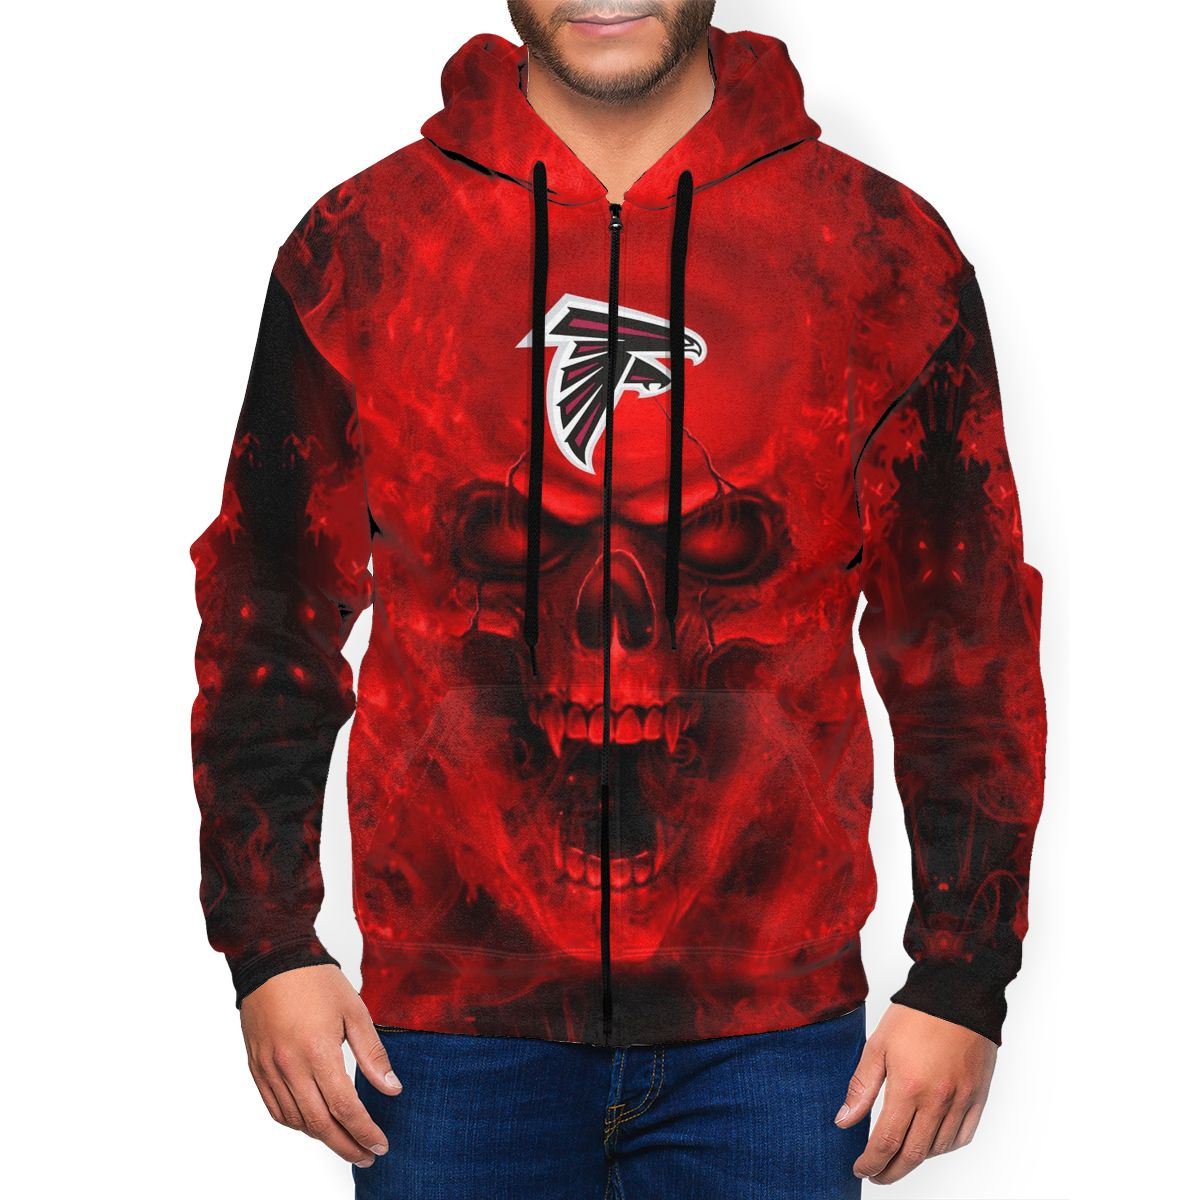 3D Skull Falcons Men's Zip Hooded Sweatshirt